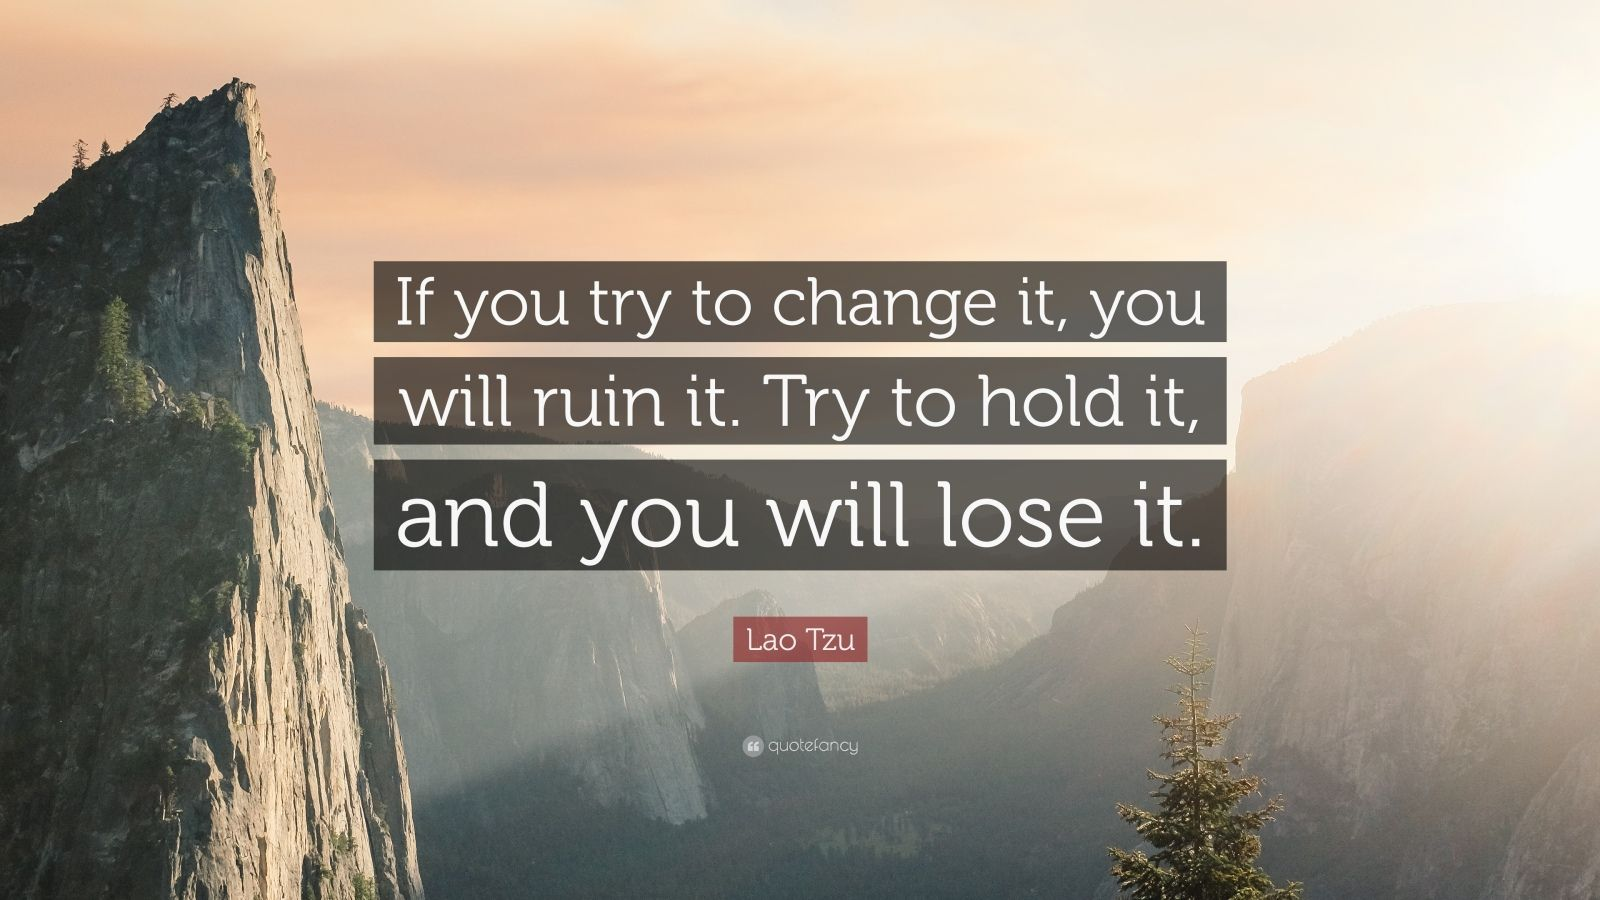 """Lao Tzu Quote: """"If you try to change it, you will ruin it. Try to hold it, and you will lose it."""""""